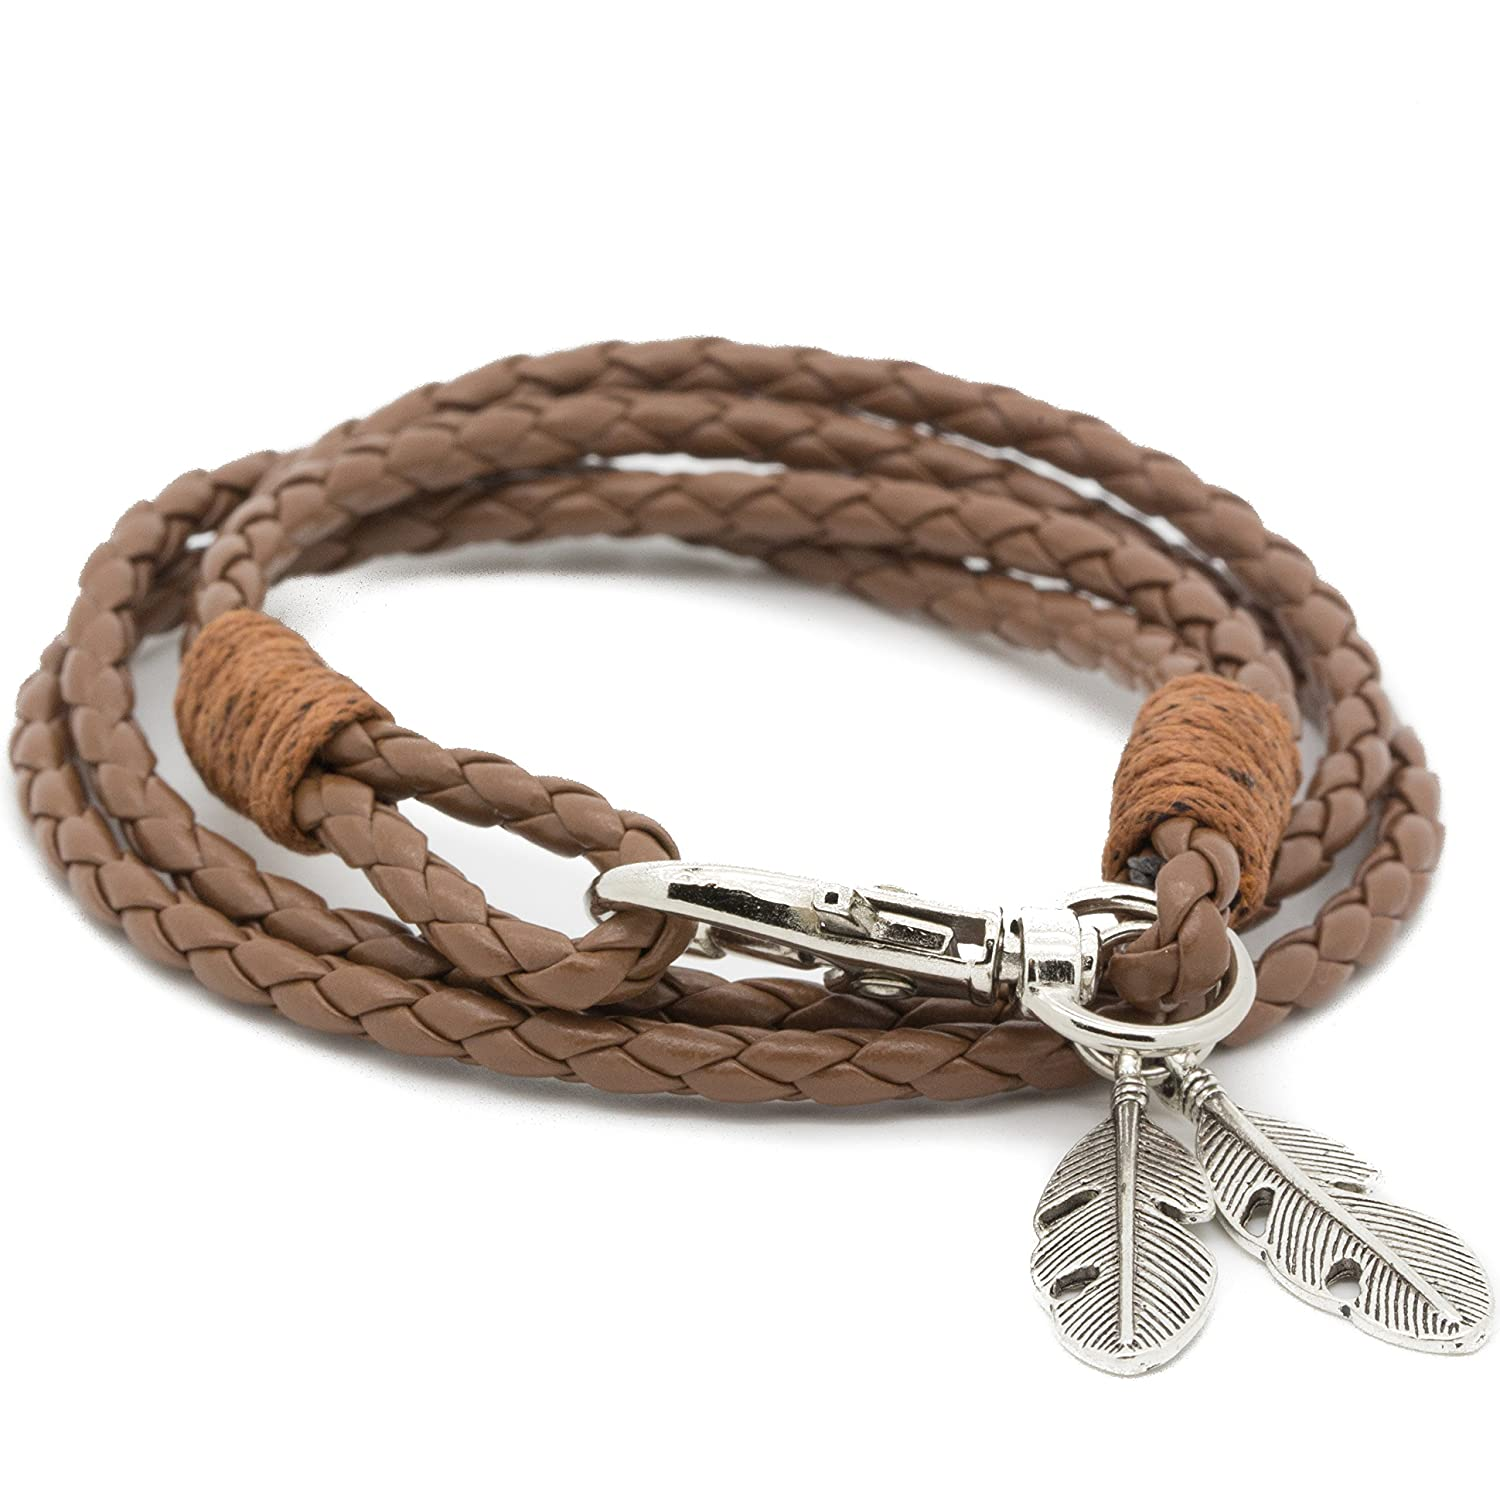 Vikings Armband geflochten tribal Twisted Envy Seil mit Federn Anhänger MESE London BrownBradedBracelet1